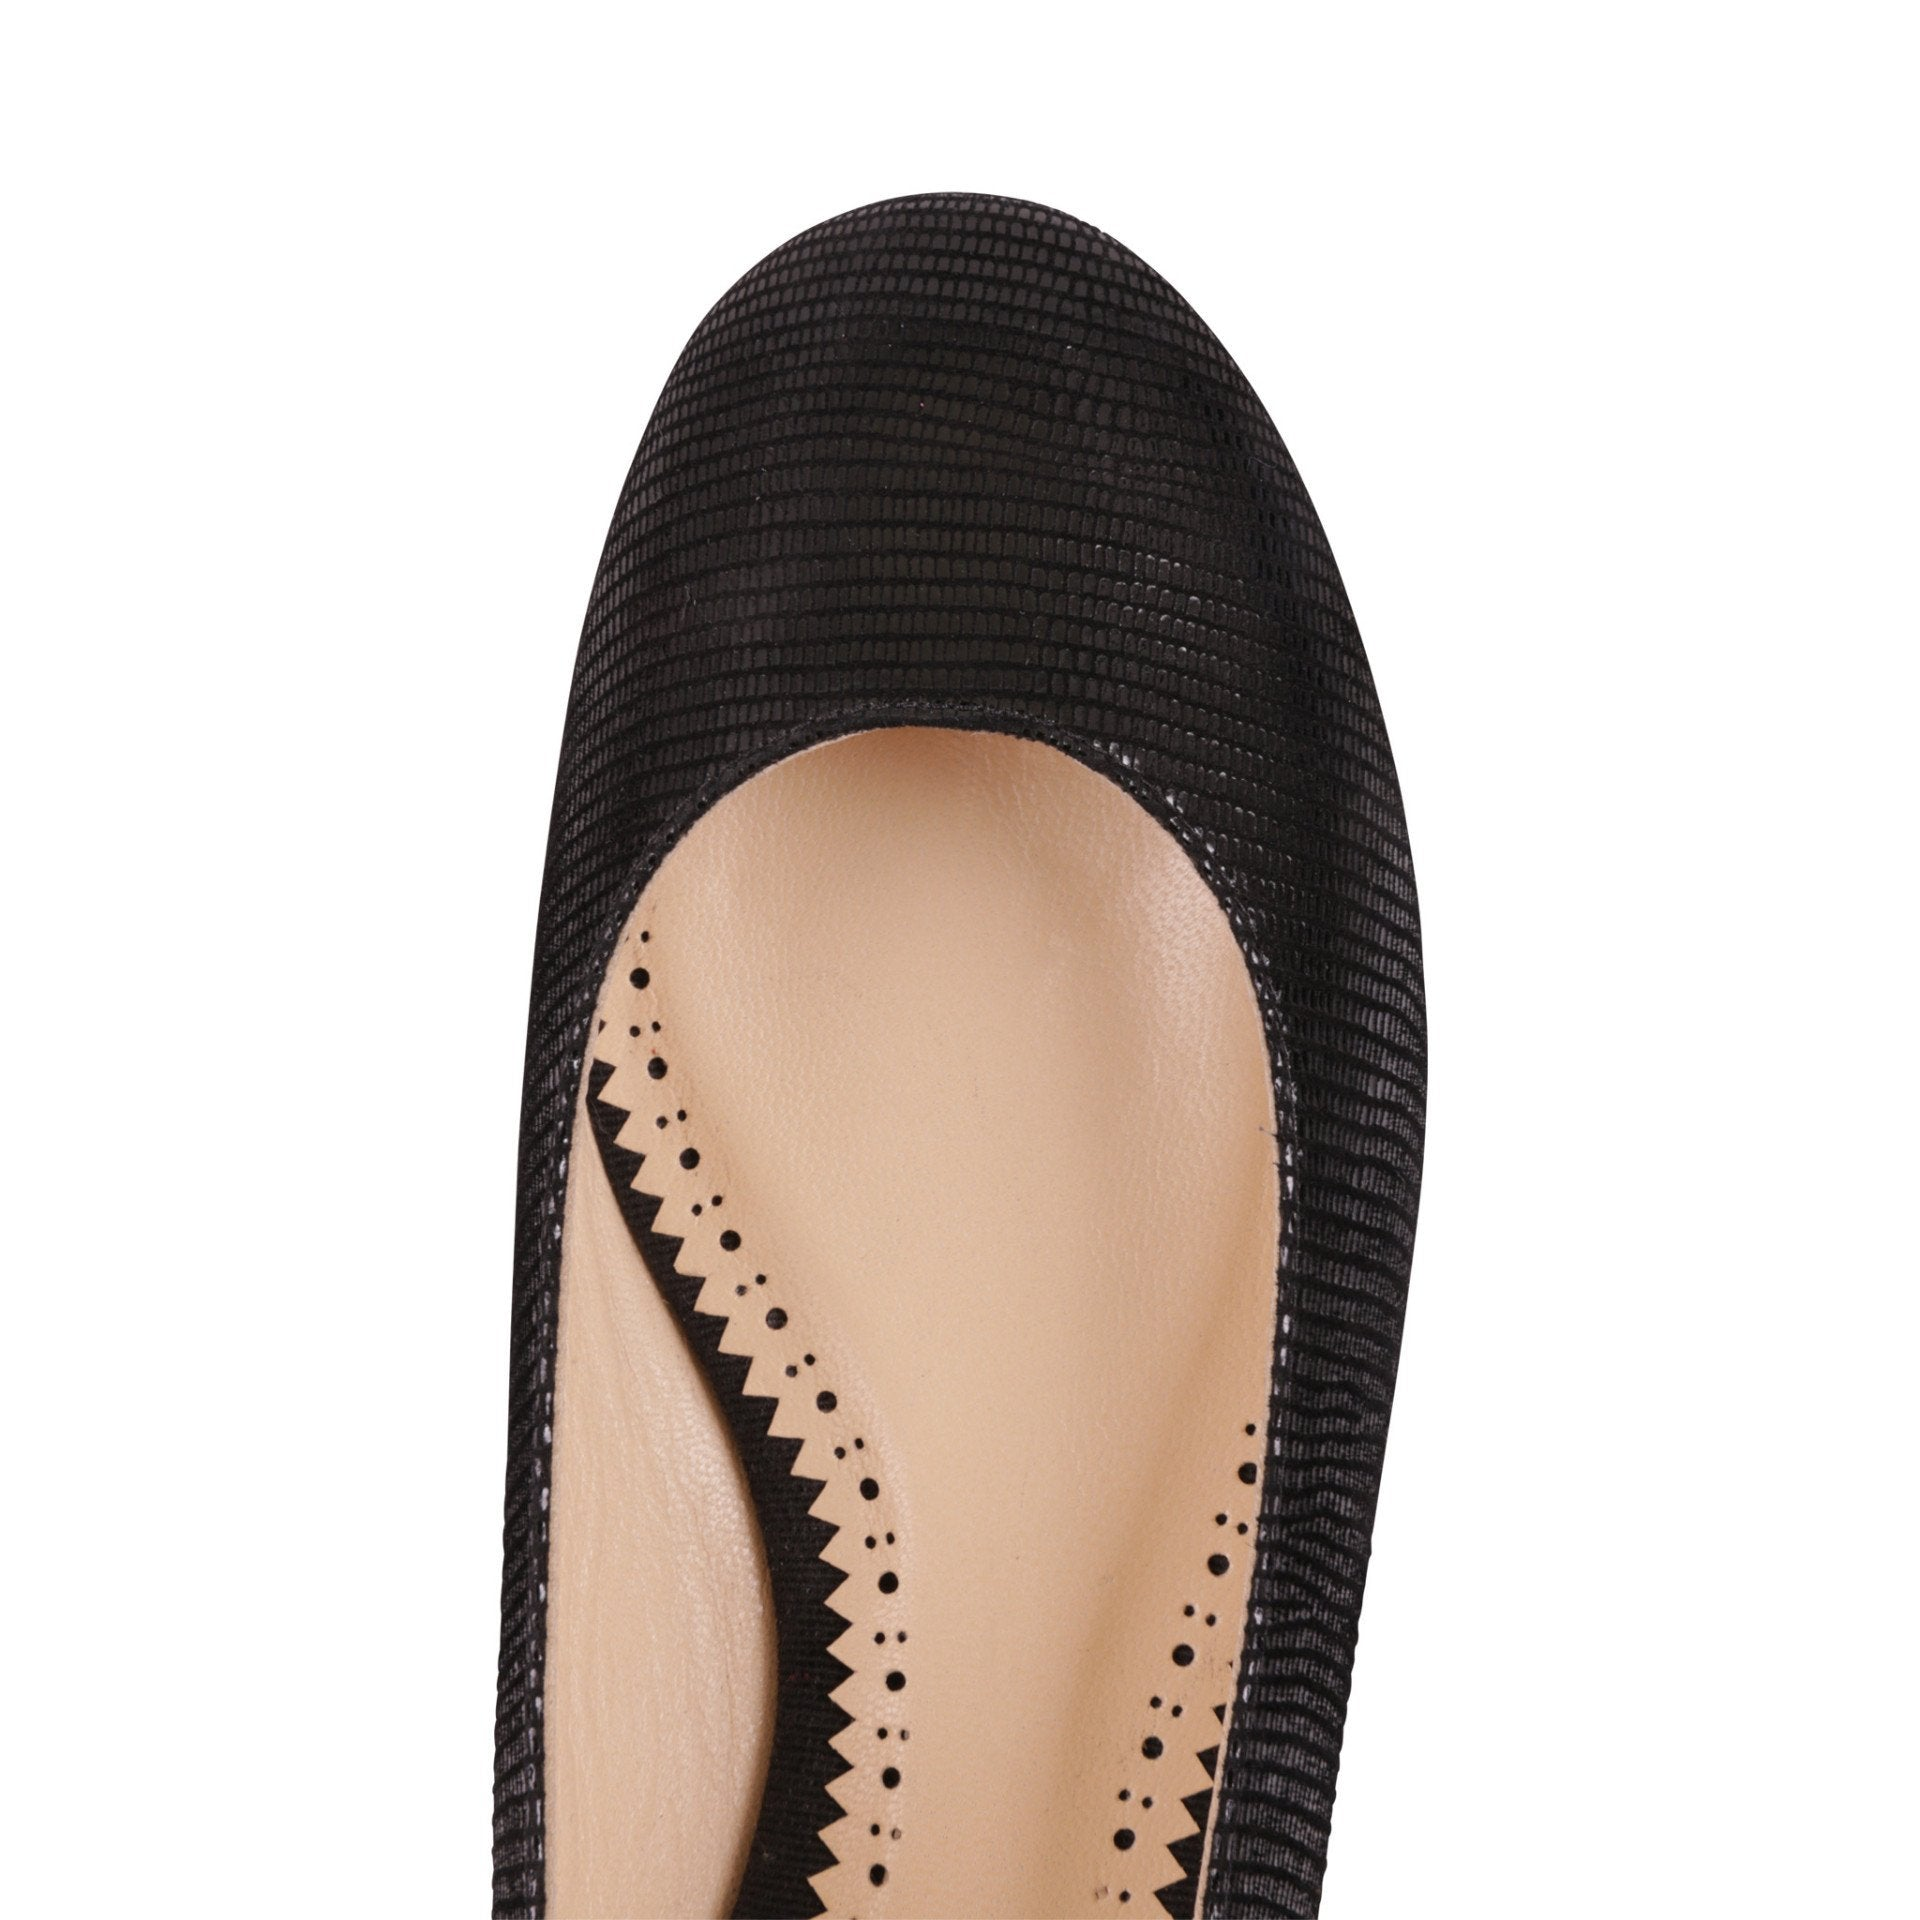 ROMA - Varanus Nero, VIAJIYU - Women's Hand Made Sustainable Luxury Shoes. Made in Italy. Made to Order.